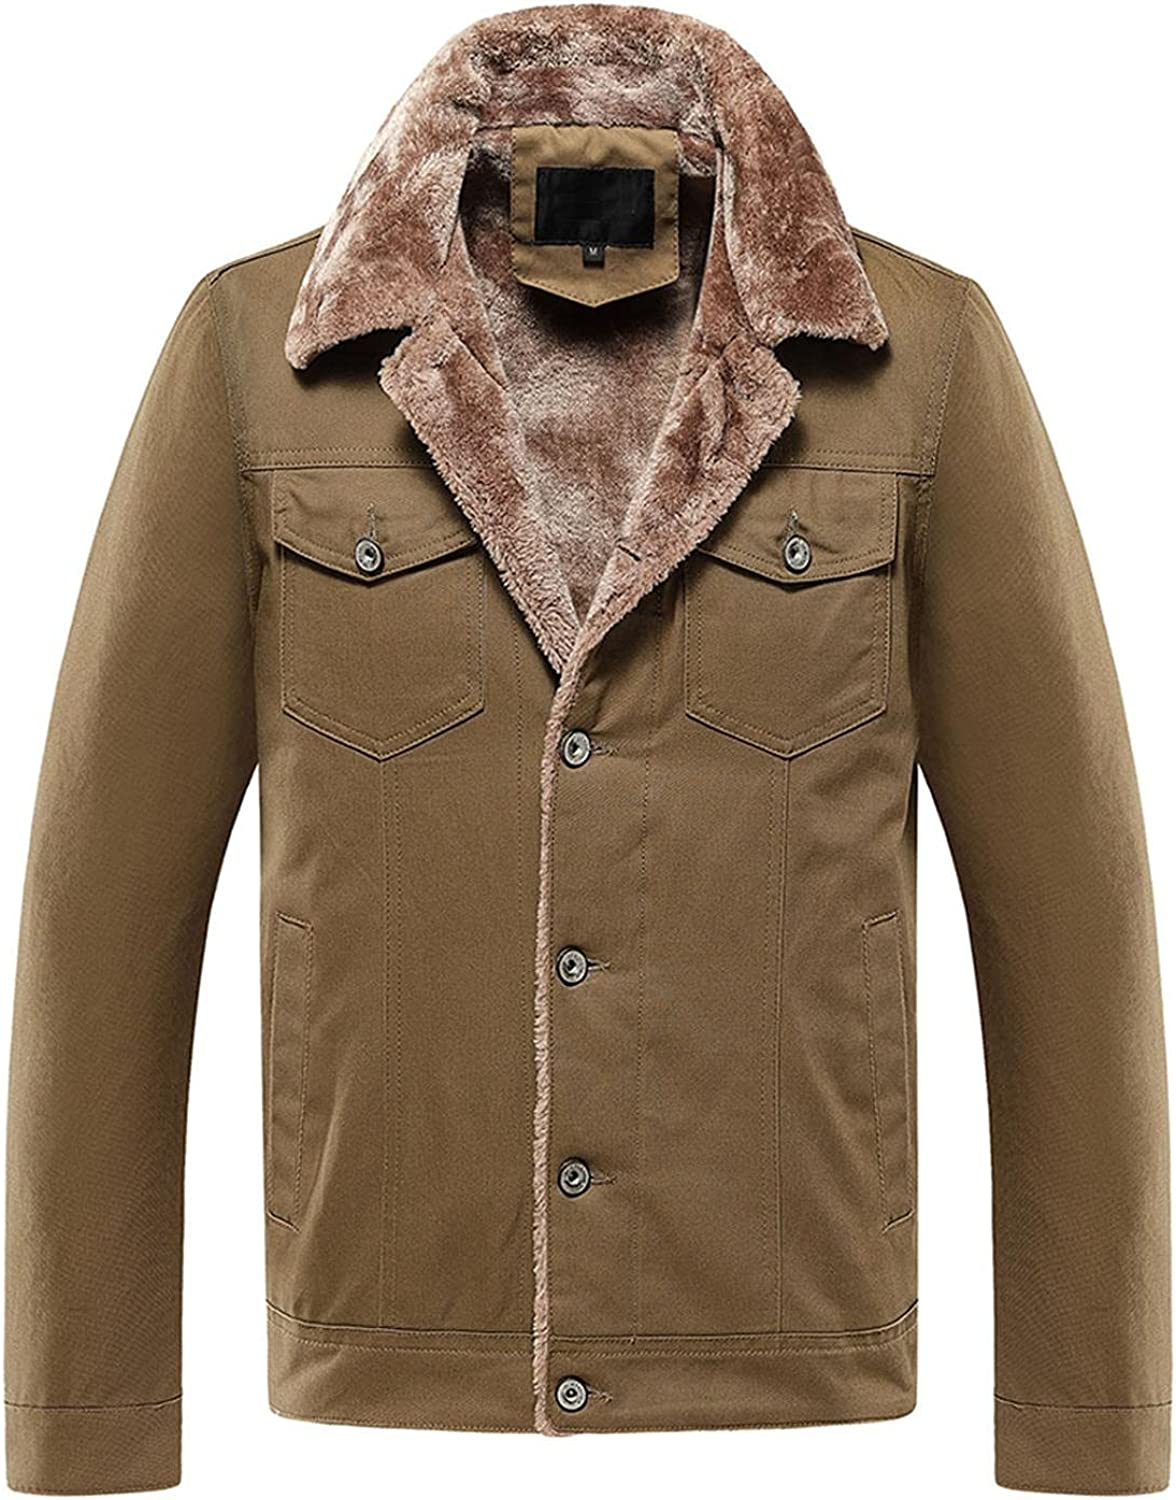 Max 70% OFF Men Classic Leather Jacket Lapel Motorcycle Long-Sleeved quality assurance Fleece